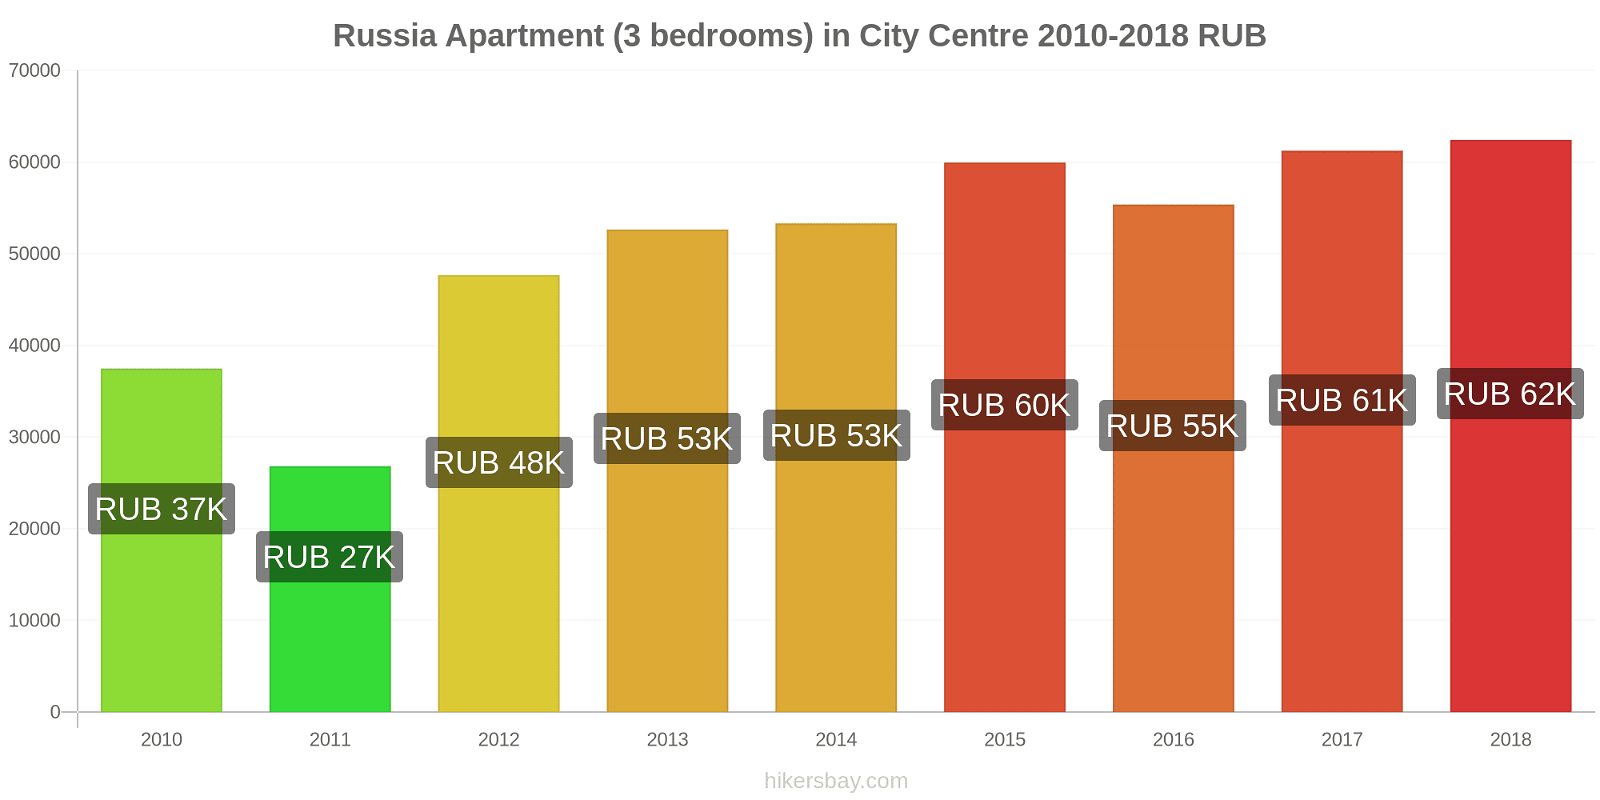 Russia price changes Apartment (3 bedrooms) in City Centre hikersbay.com